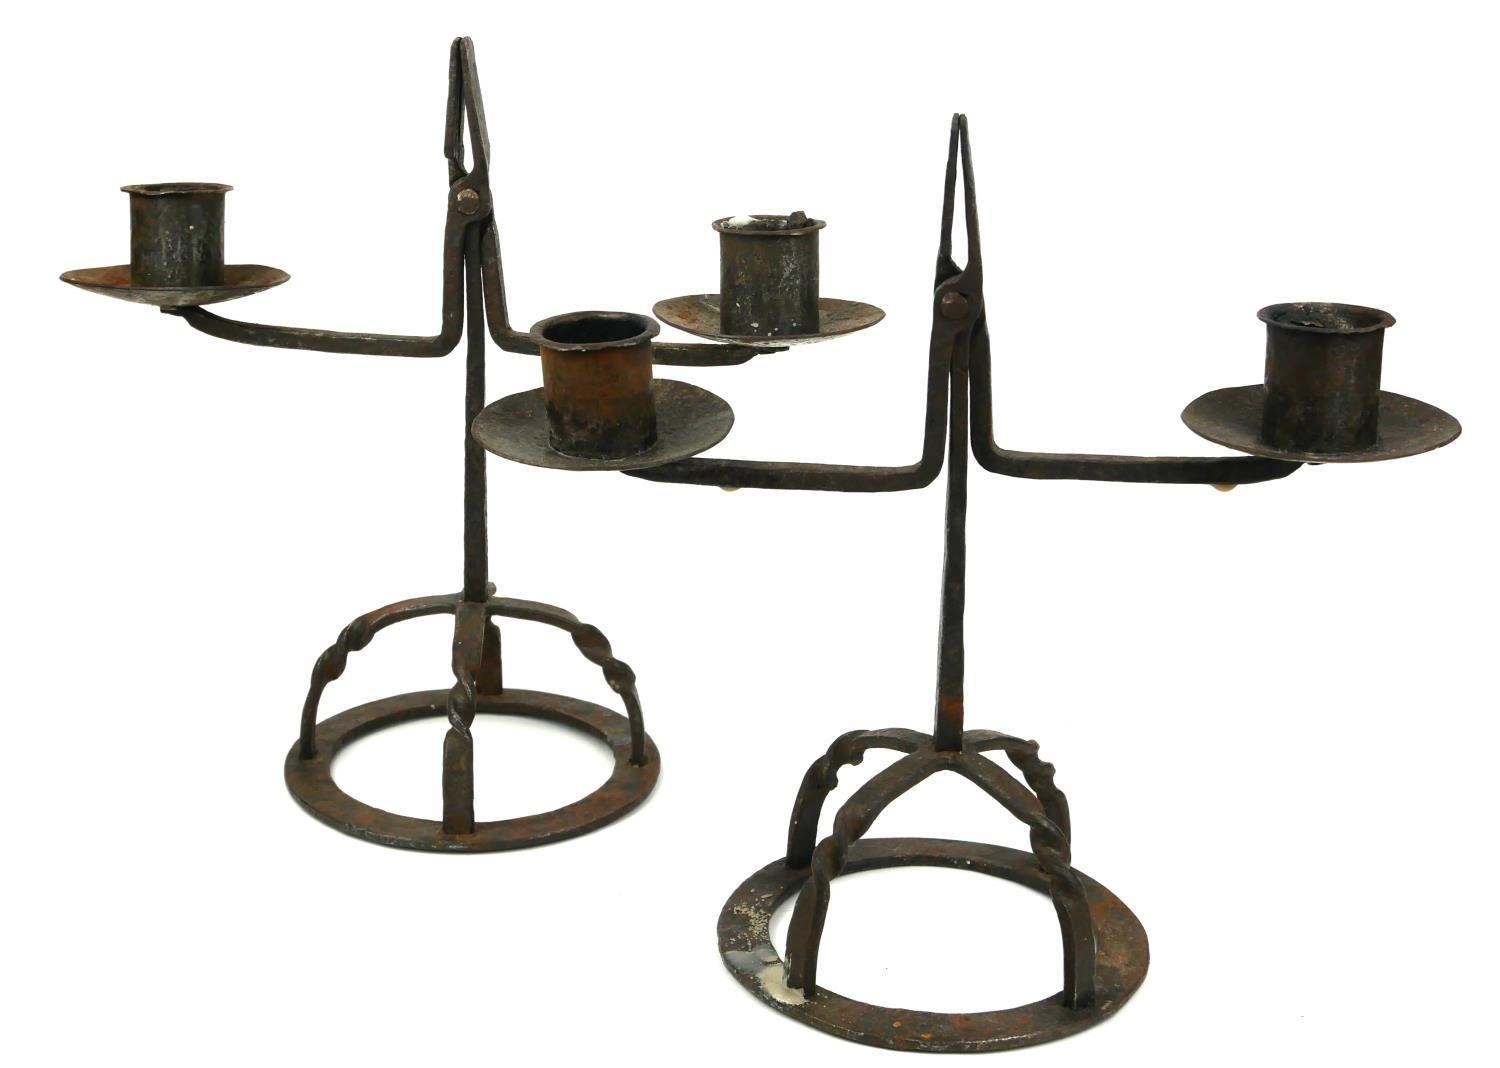 A RARE PAIR OF 17TH/18TH CENTURY WROUGHT IRON TWIN BRANCH RUSH CANDELABRA. (35cm x 32cm)